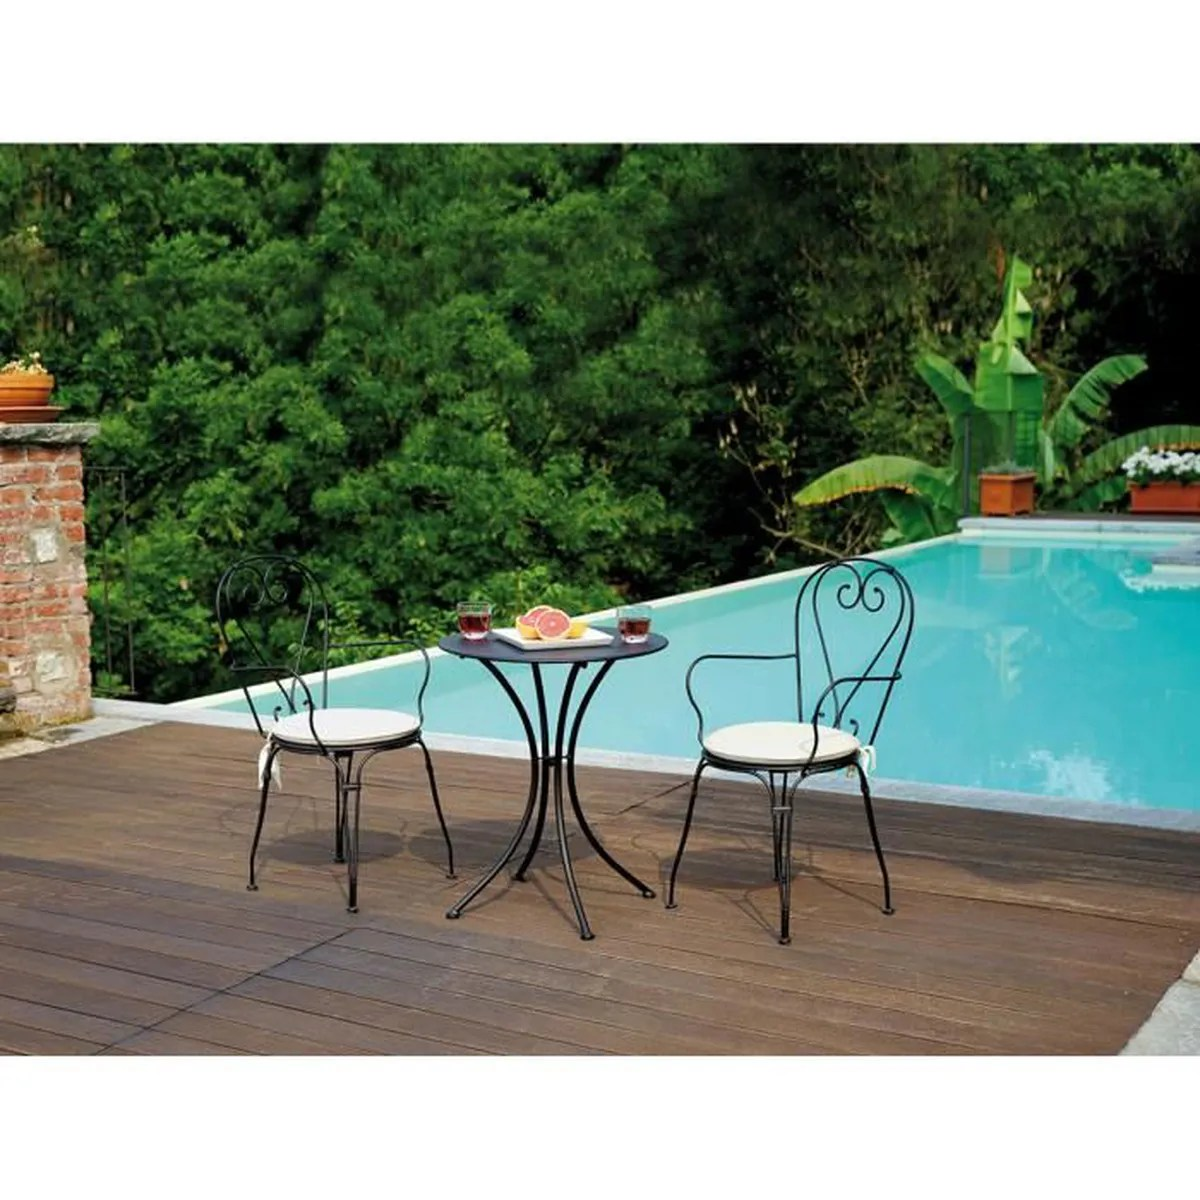 Table De Jardin En Fer Forgé Table Et Chaise En Fer Forge Achat Vente Table Et